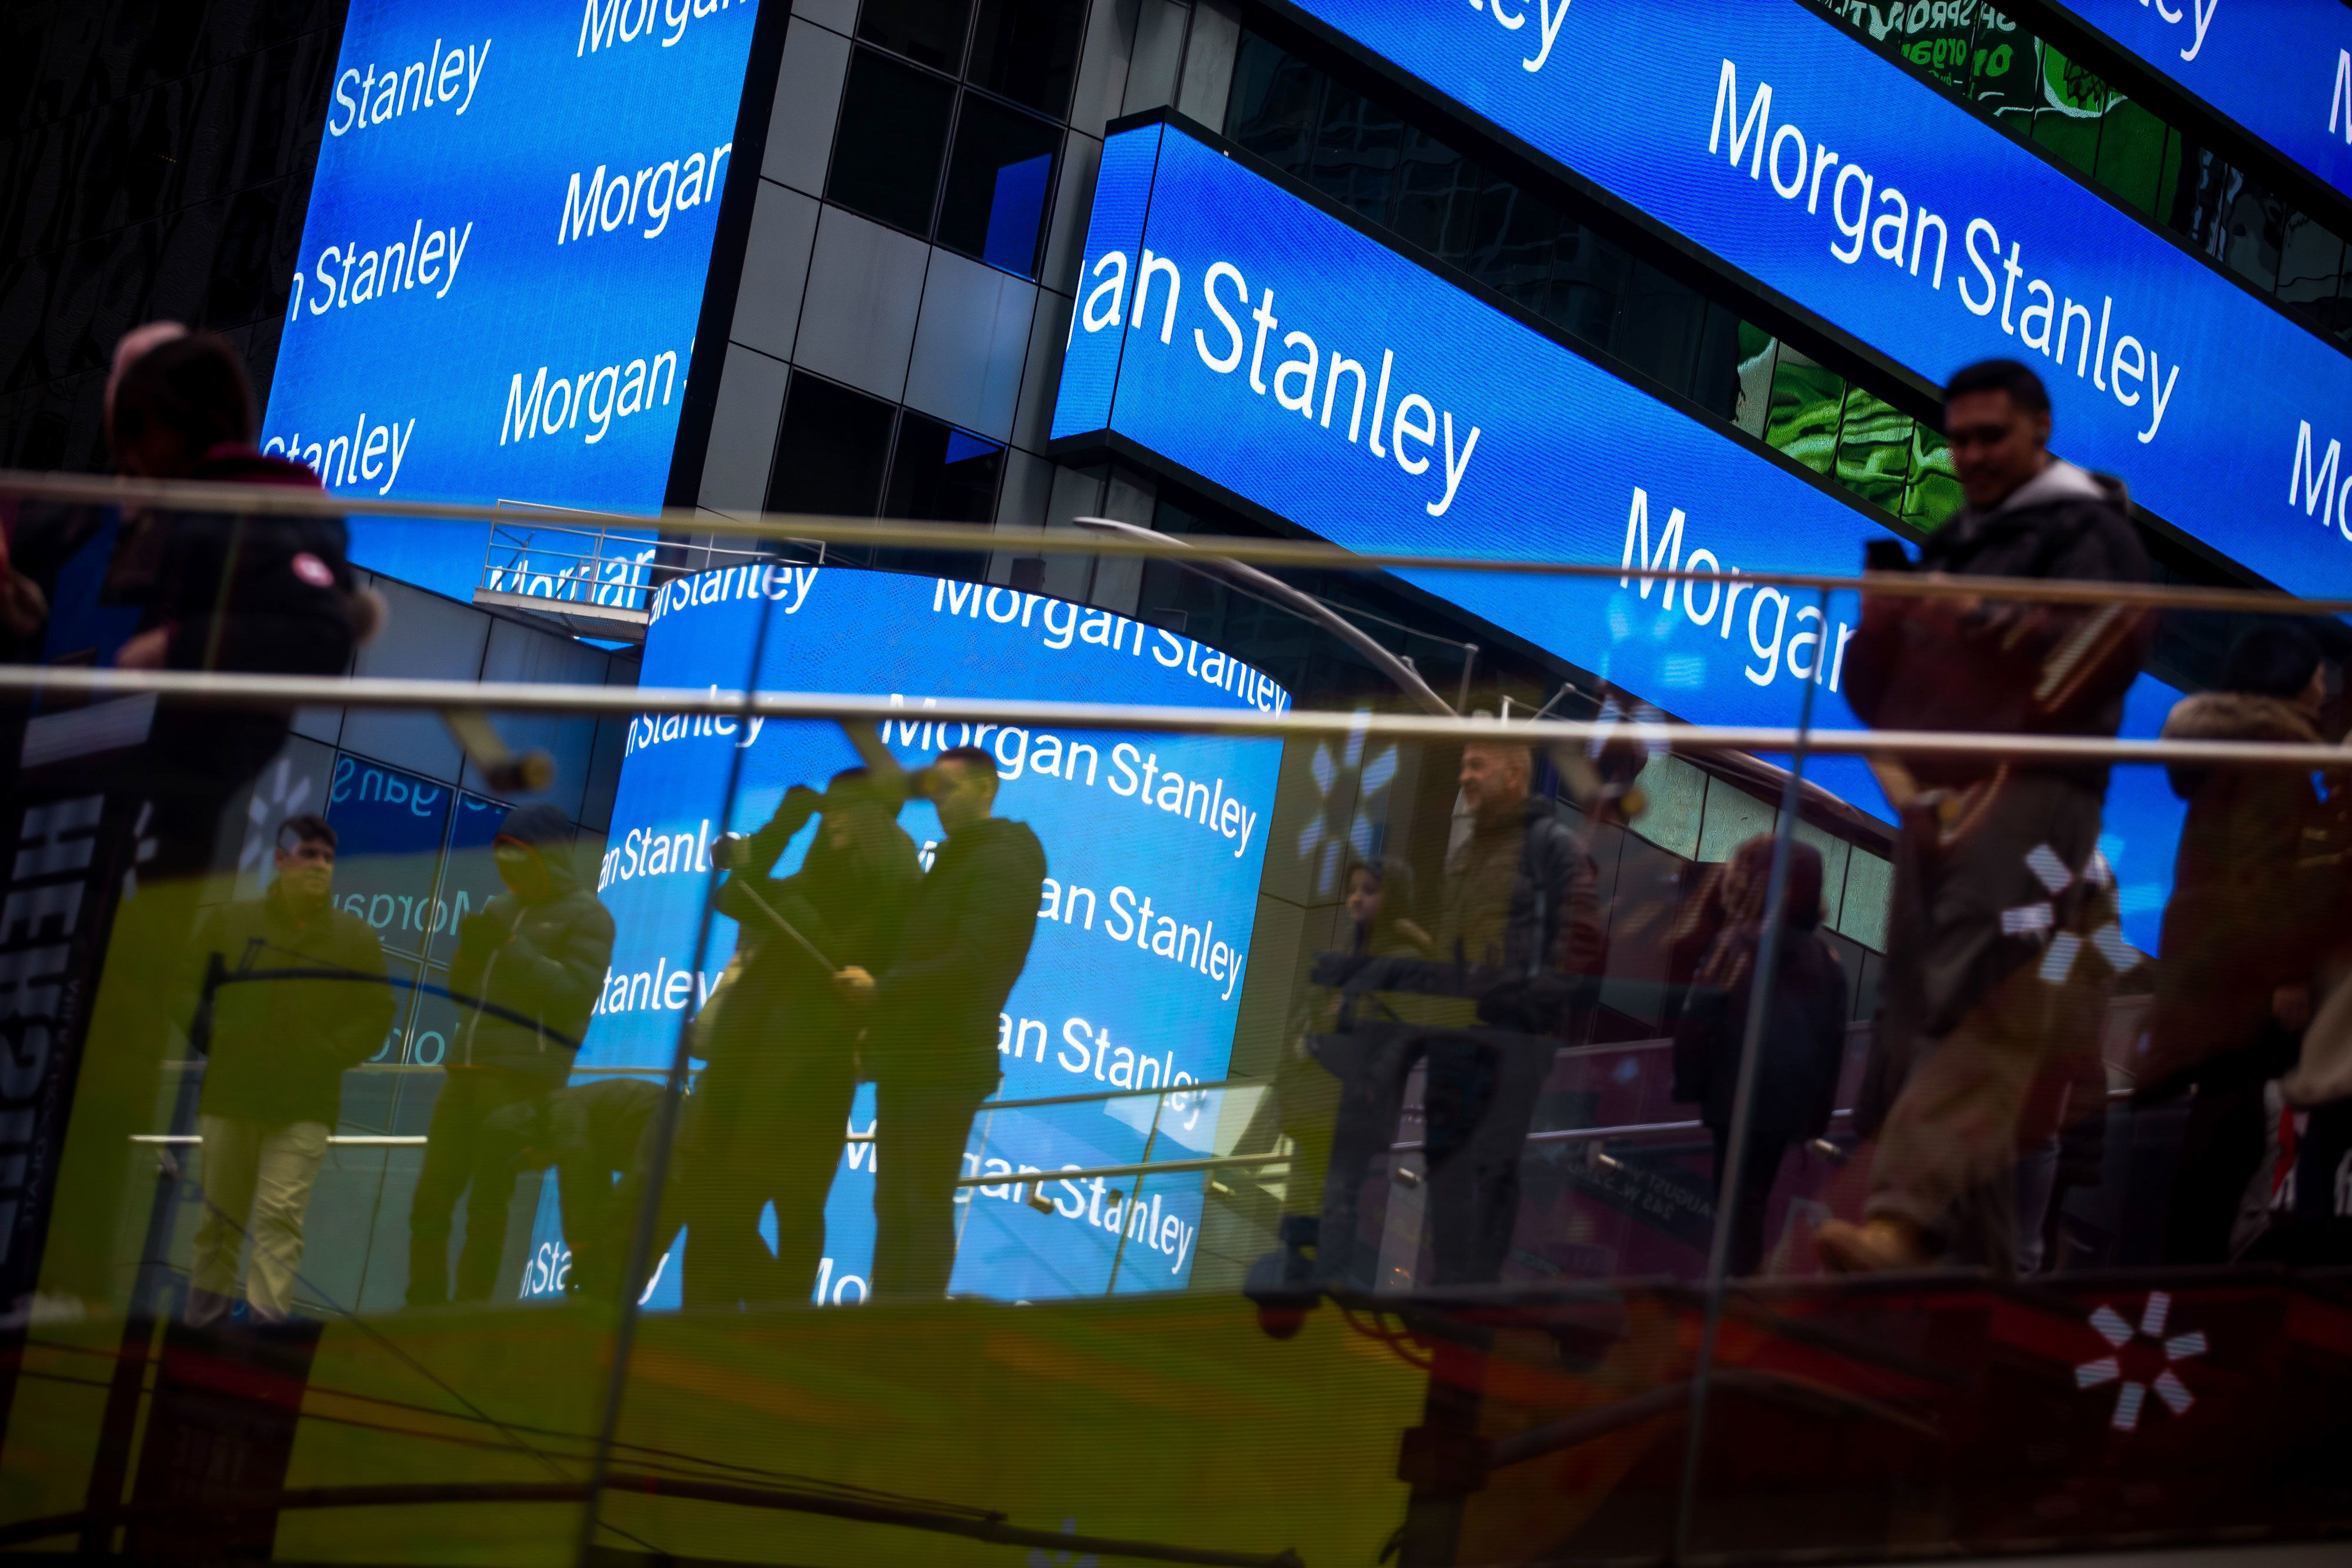 Rich Morgan Stanley clients withdrew a surprising amount to pay taxes